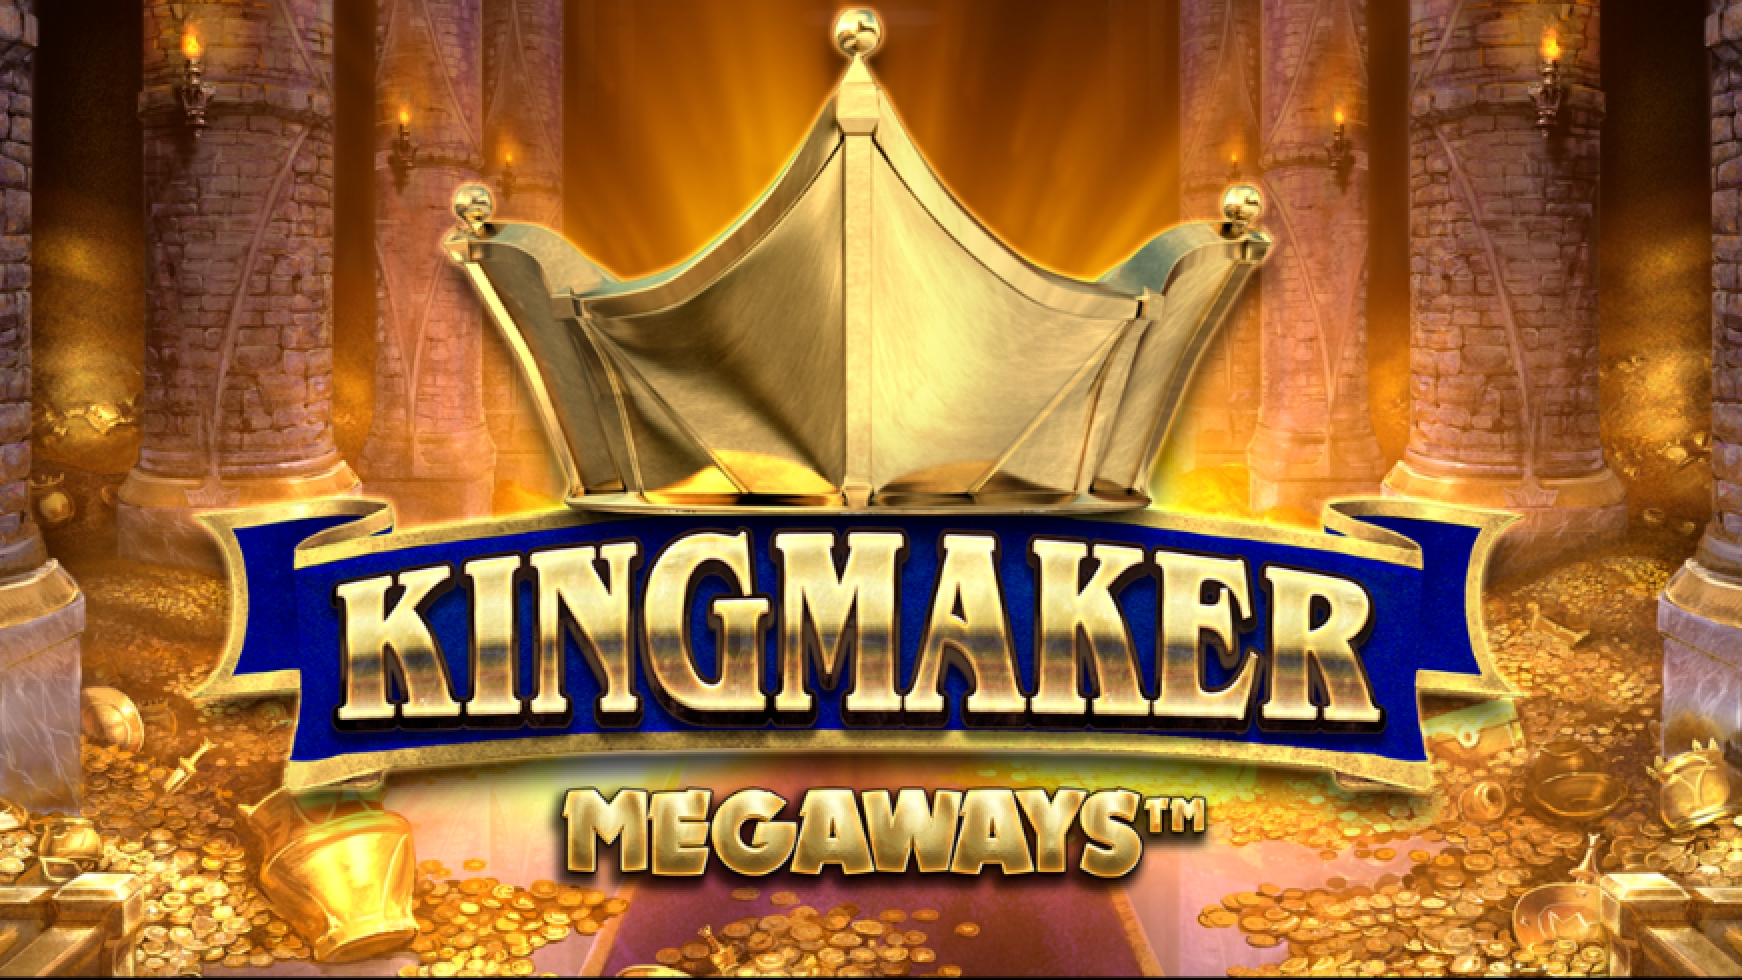 The Kingmaker Online Slot Demo Game by Big Time Gaming